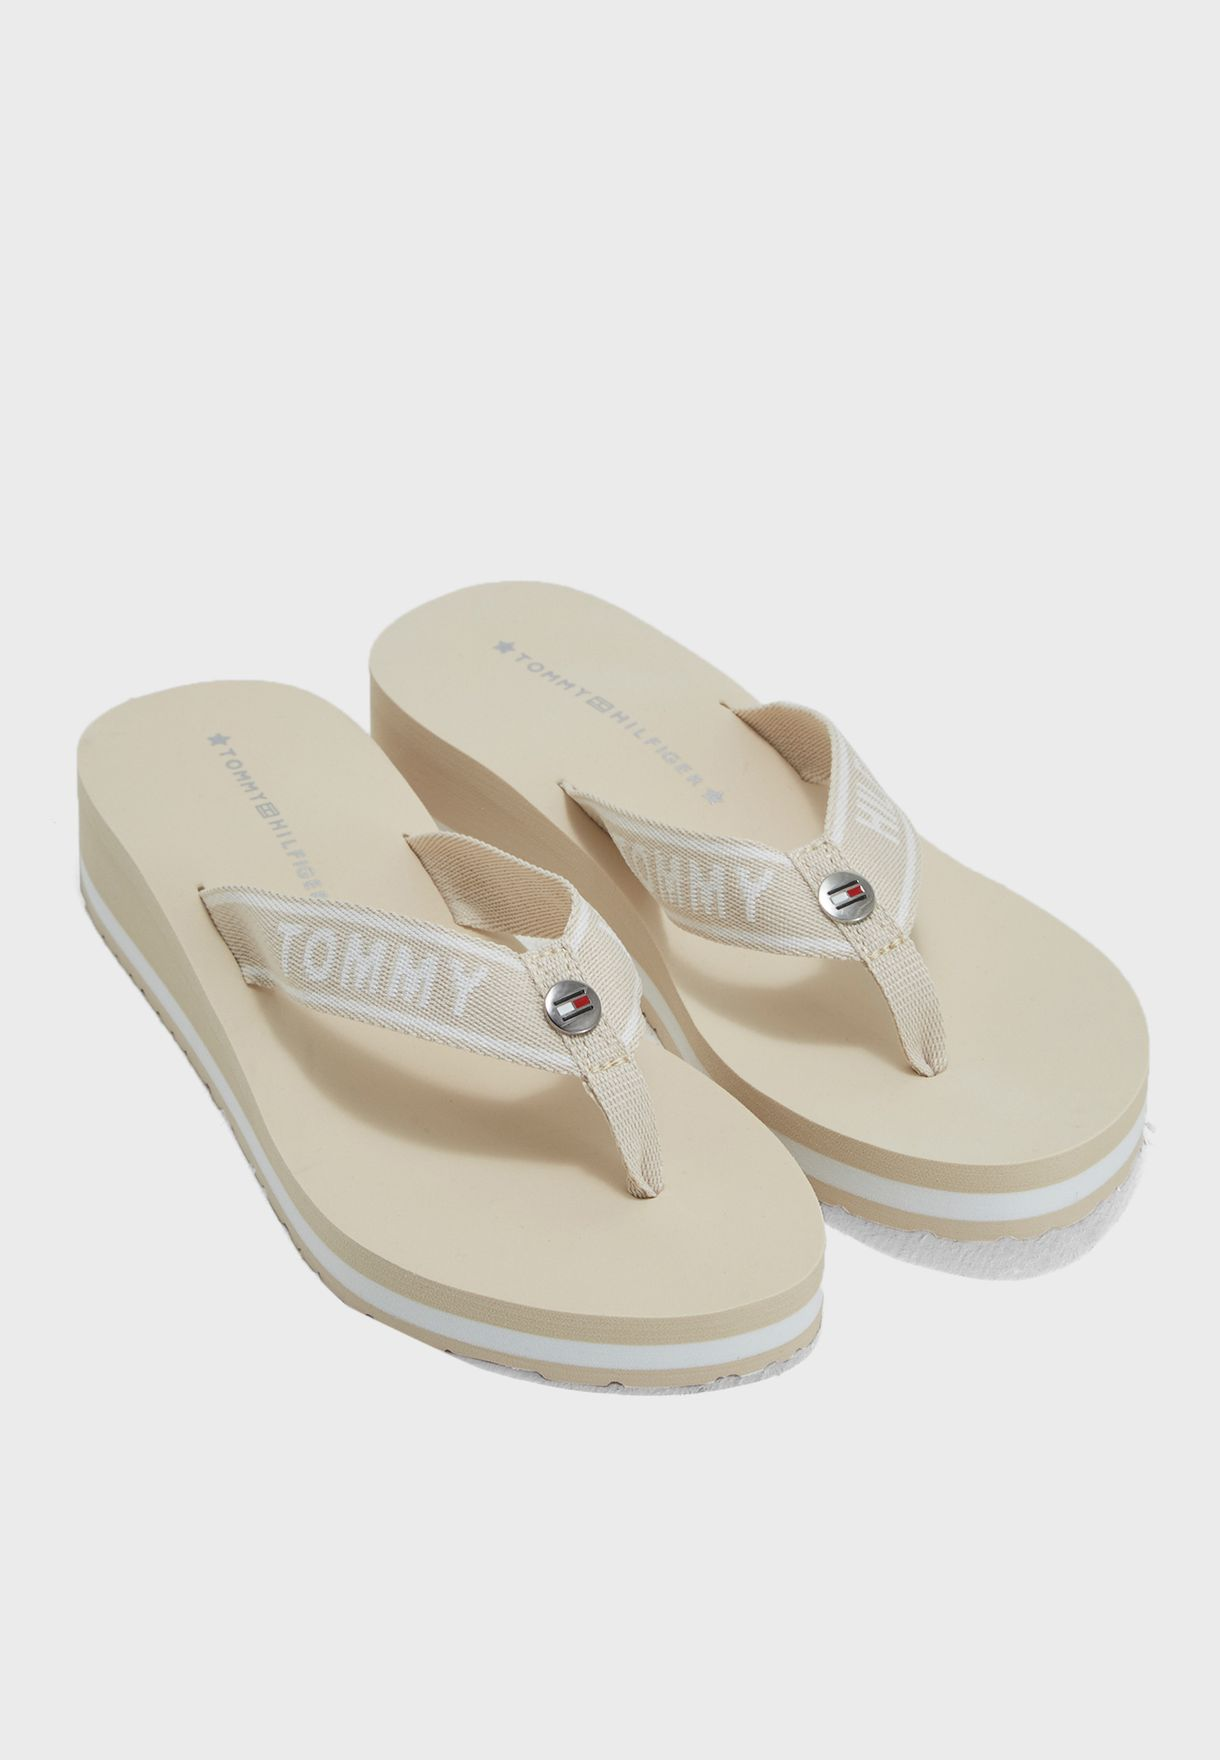 27123a496c01b1 Shop Tommy Hilfiger beige Tommy Branding Beach Sandal FW0FW02953 for Women  in Saudi - TO279SH82PPP